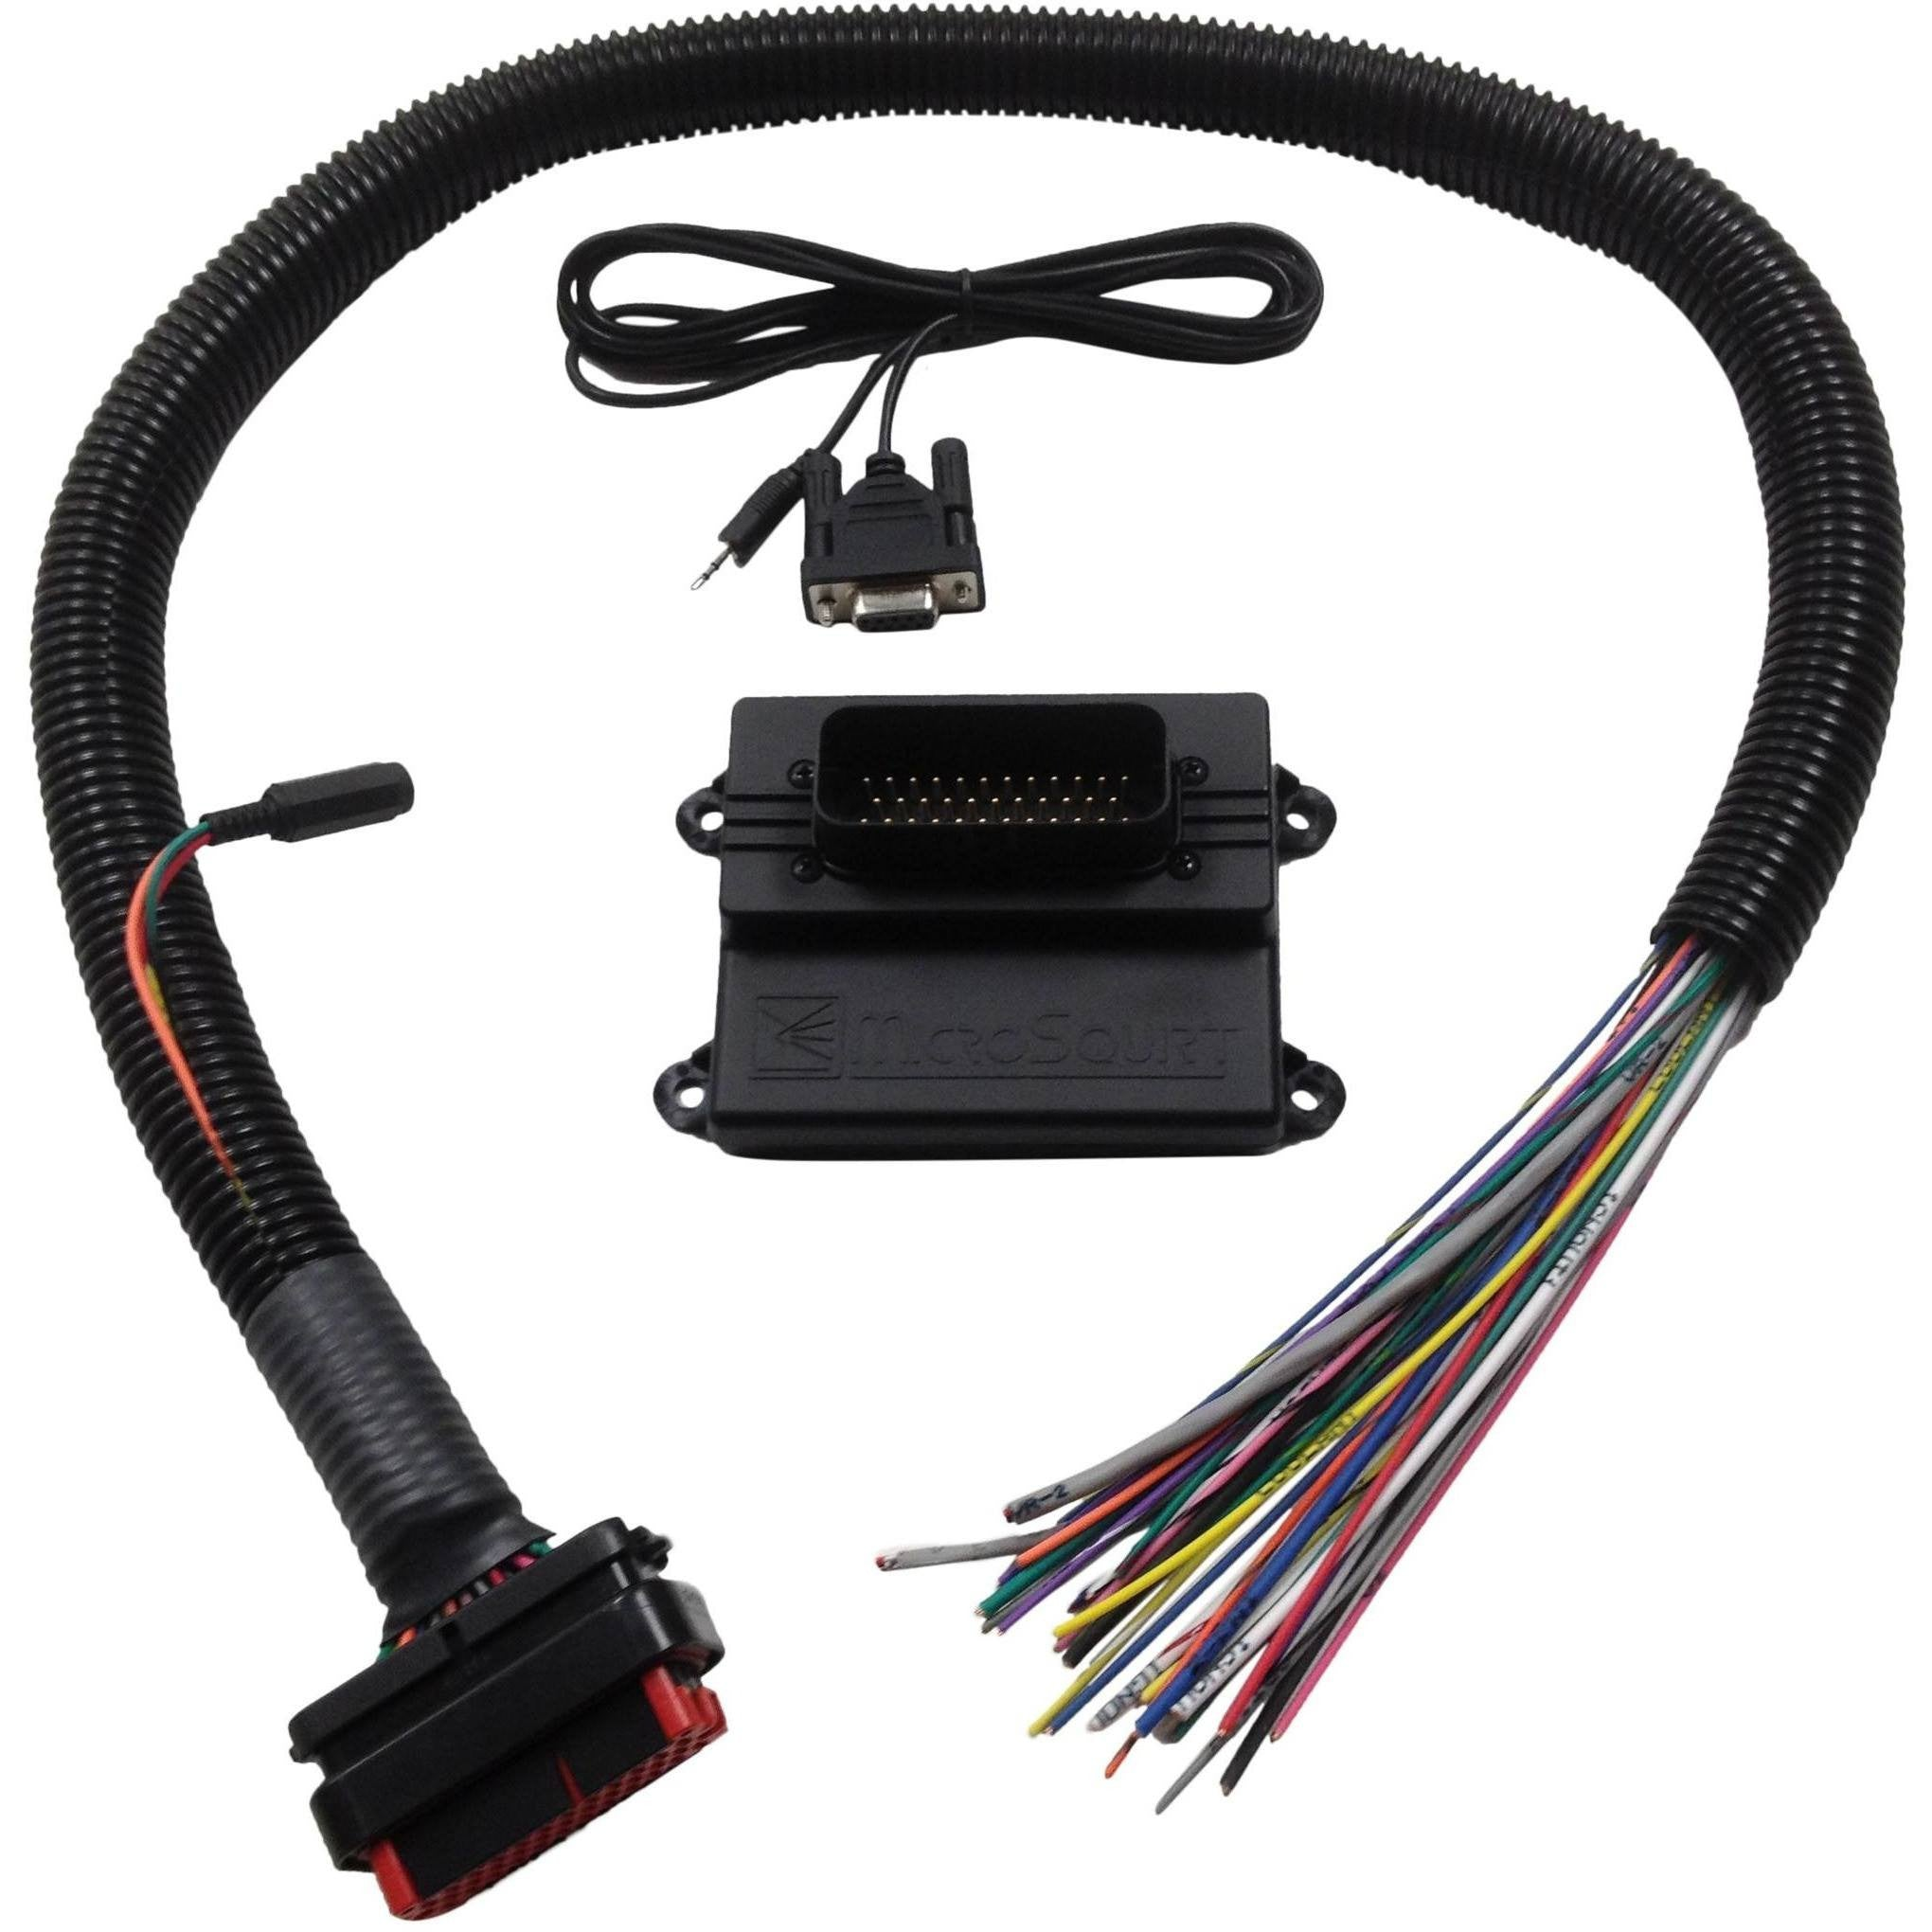 micro squirt w 8 wiring harness 1?v=1494751884 micro squirt w 8' wiring harness race energy performance Jaguar Injector Harness at bayanpartner.co